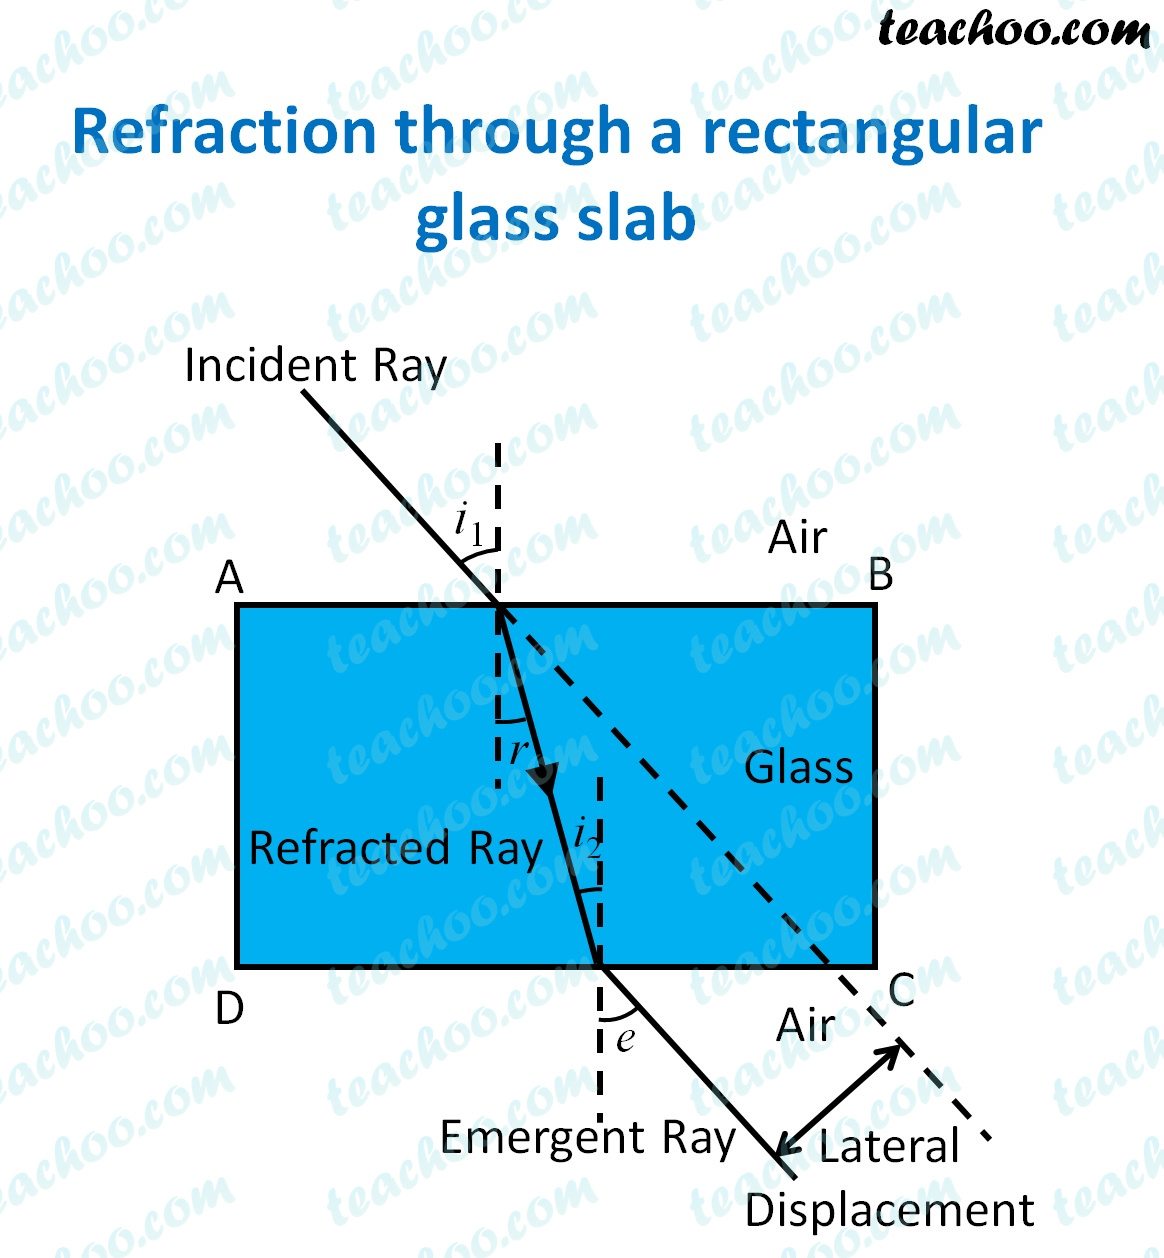 refraction-through-a-rectangular-glass-slab---teachoo.jpg